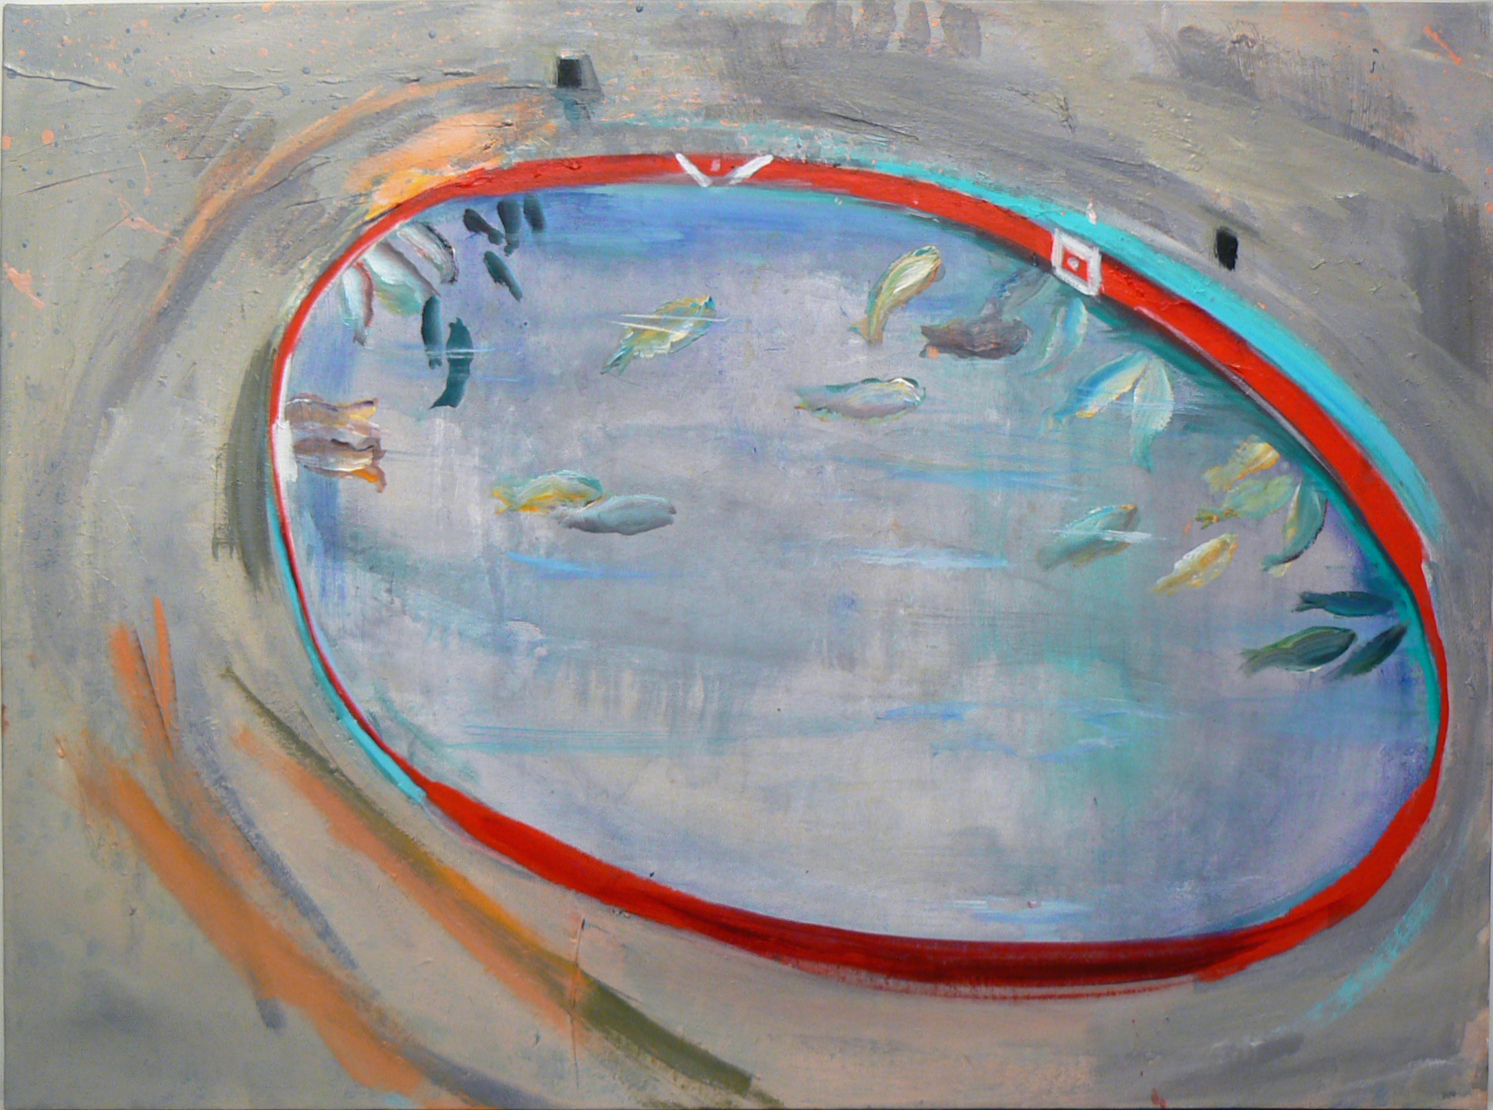 Judith Simonian,  Fishing Arena , 2012, Acrylic on canvas, 27h x 36w in.